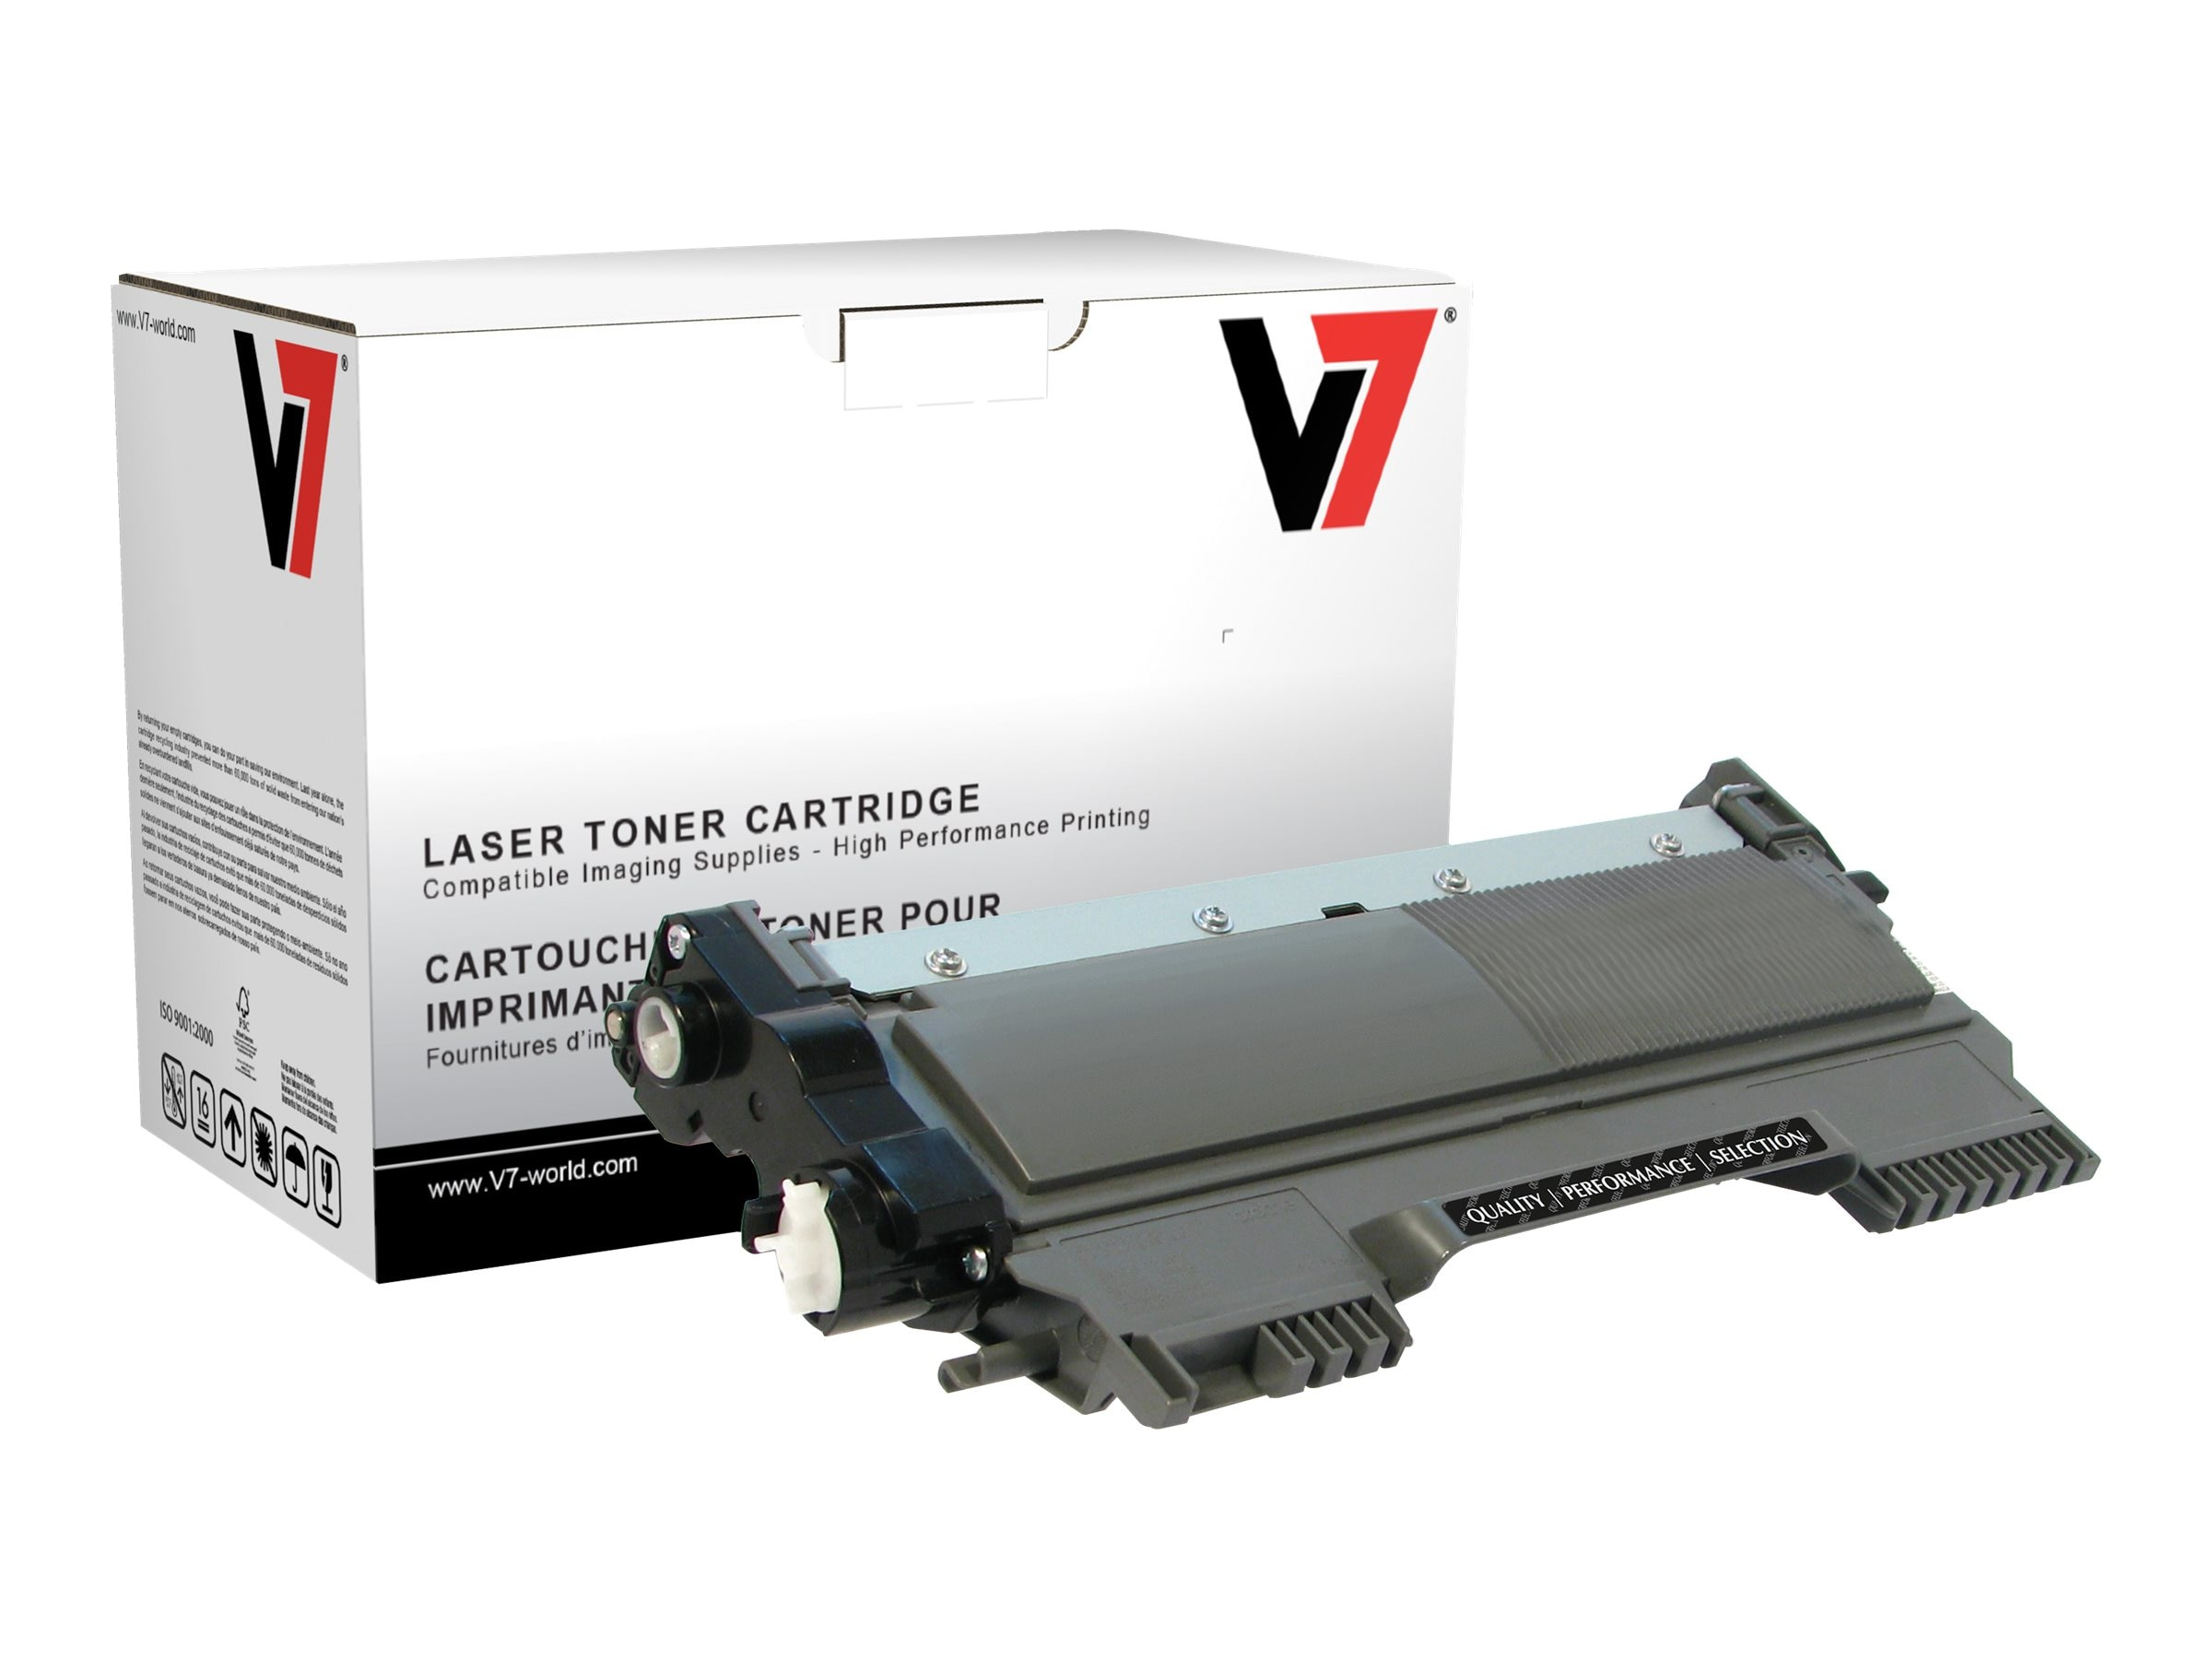 V7 TN420 Black Toner Cartridge for Brother HL-2240D (TAA Compliant)